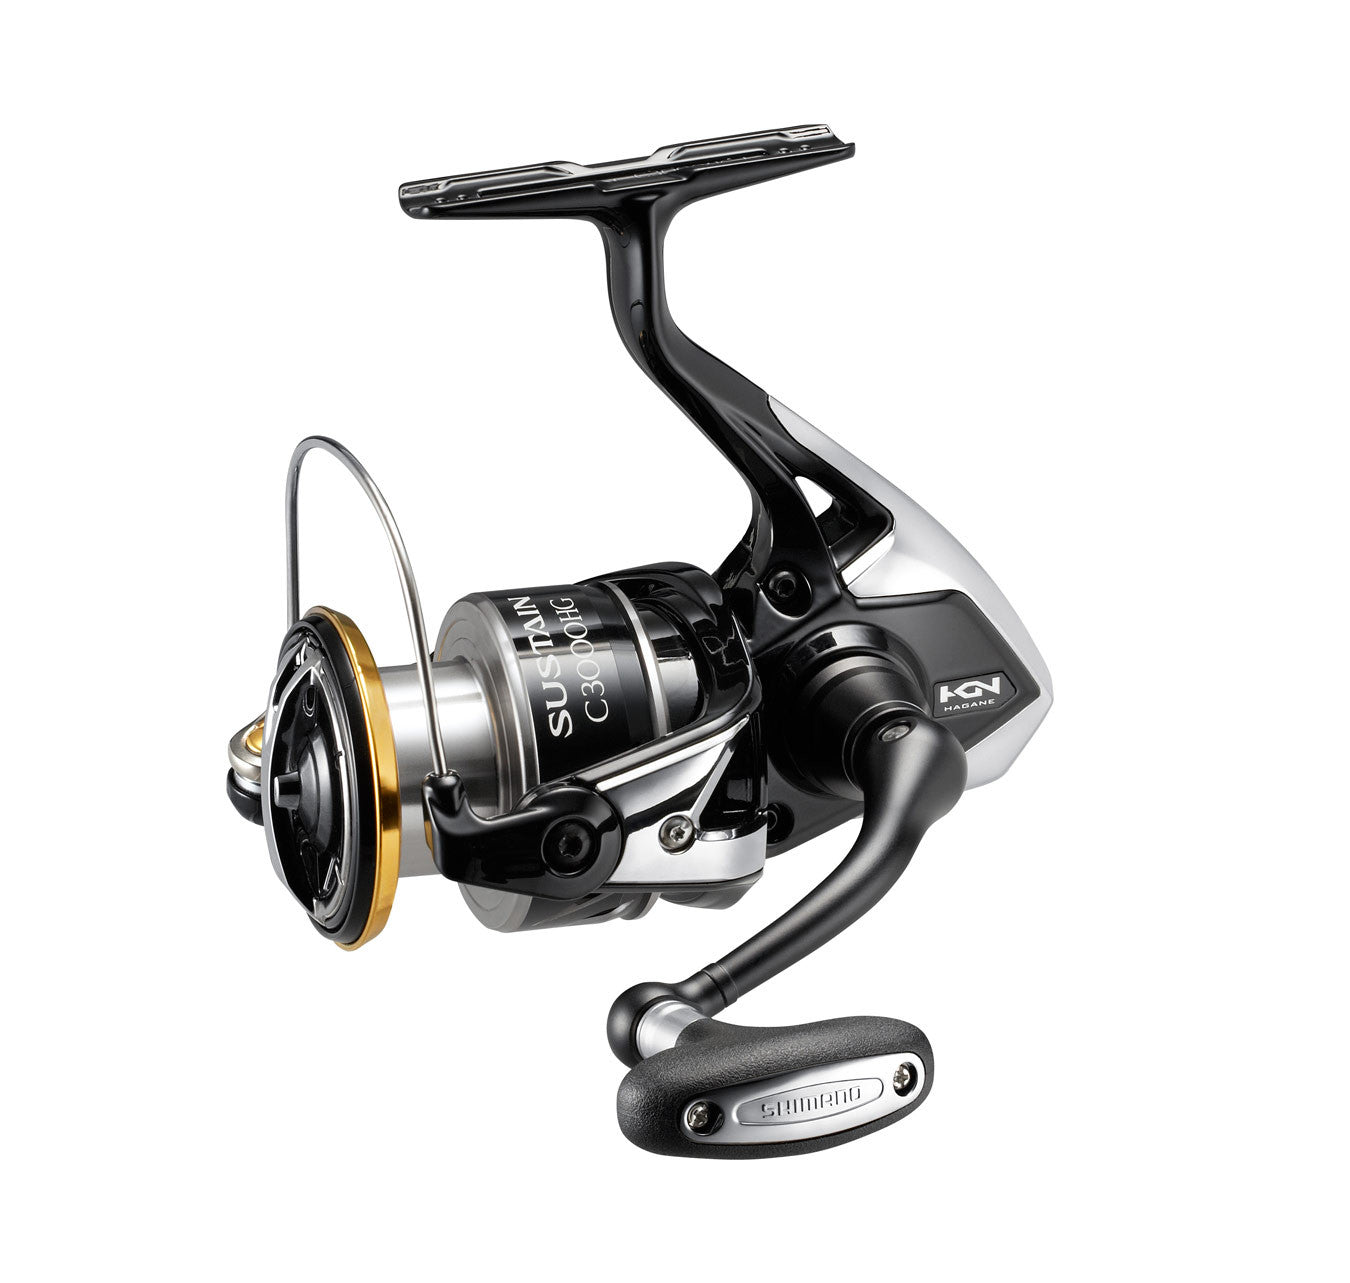 Rock and Surf Reels Page 2 - Fishing's Finest